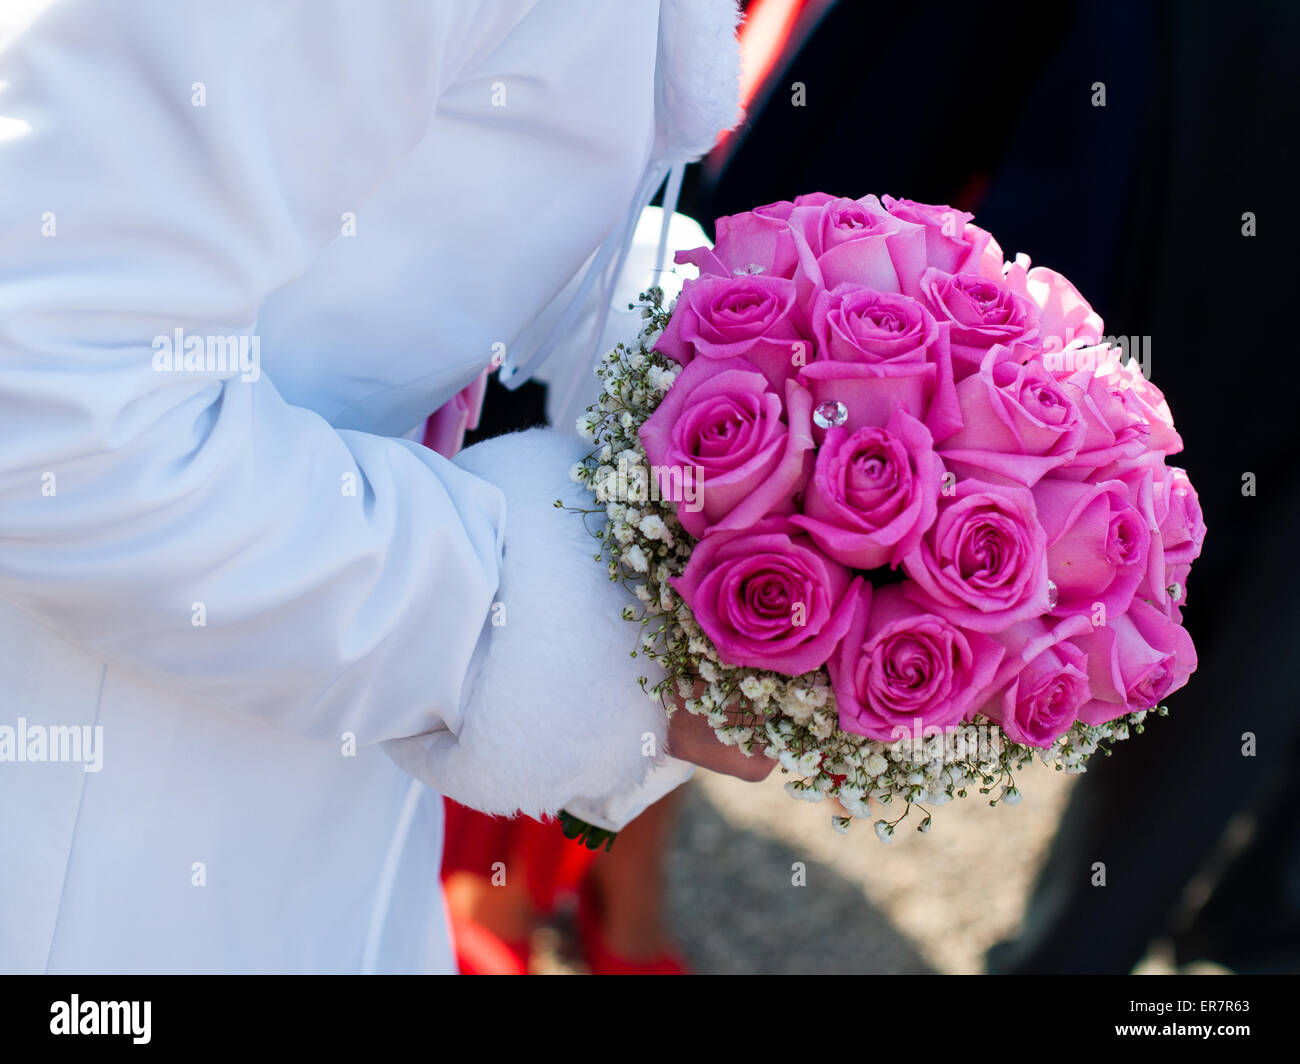 Wedding\'s Stock Photos & Wedding\'s Stock Images - Alamy